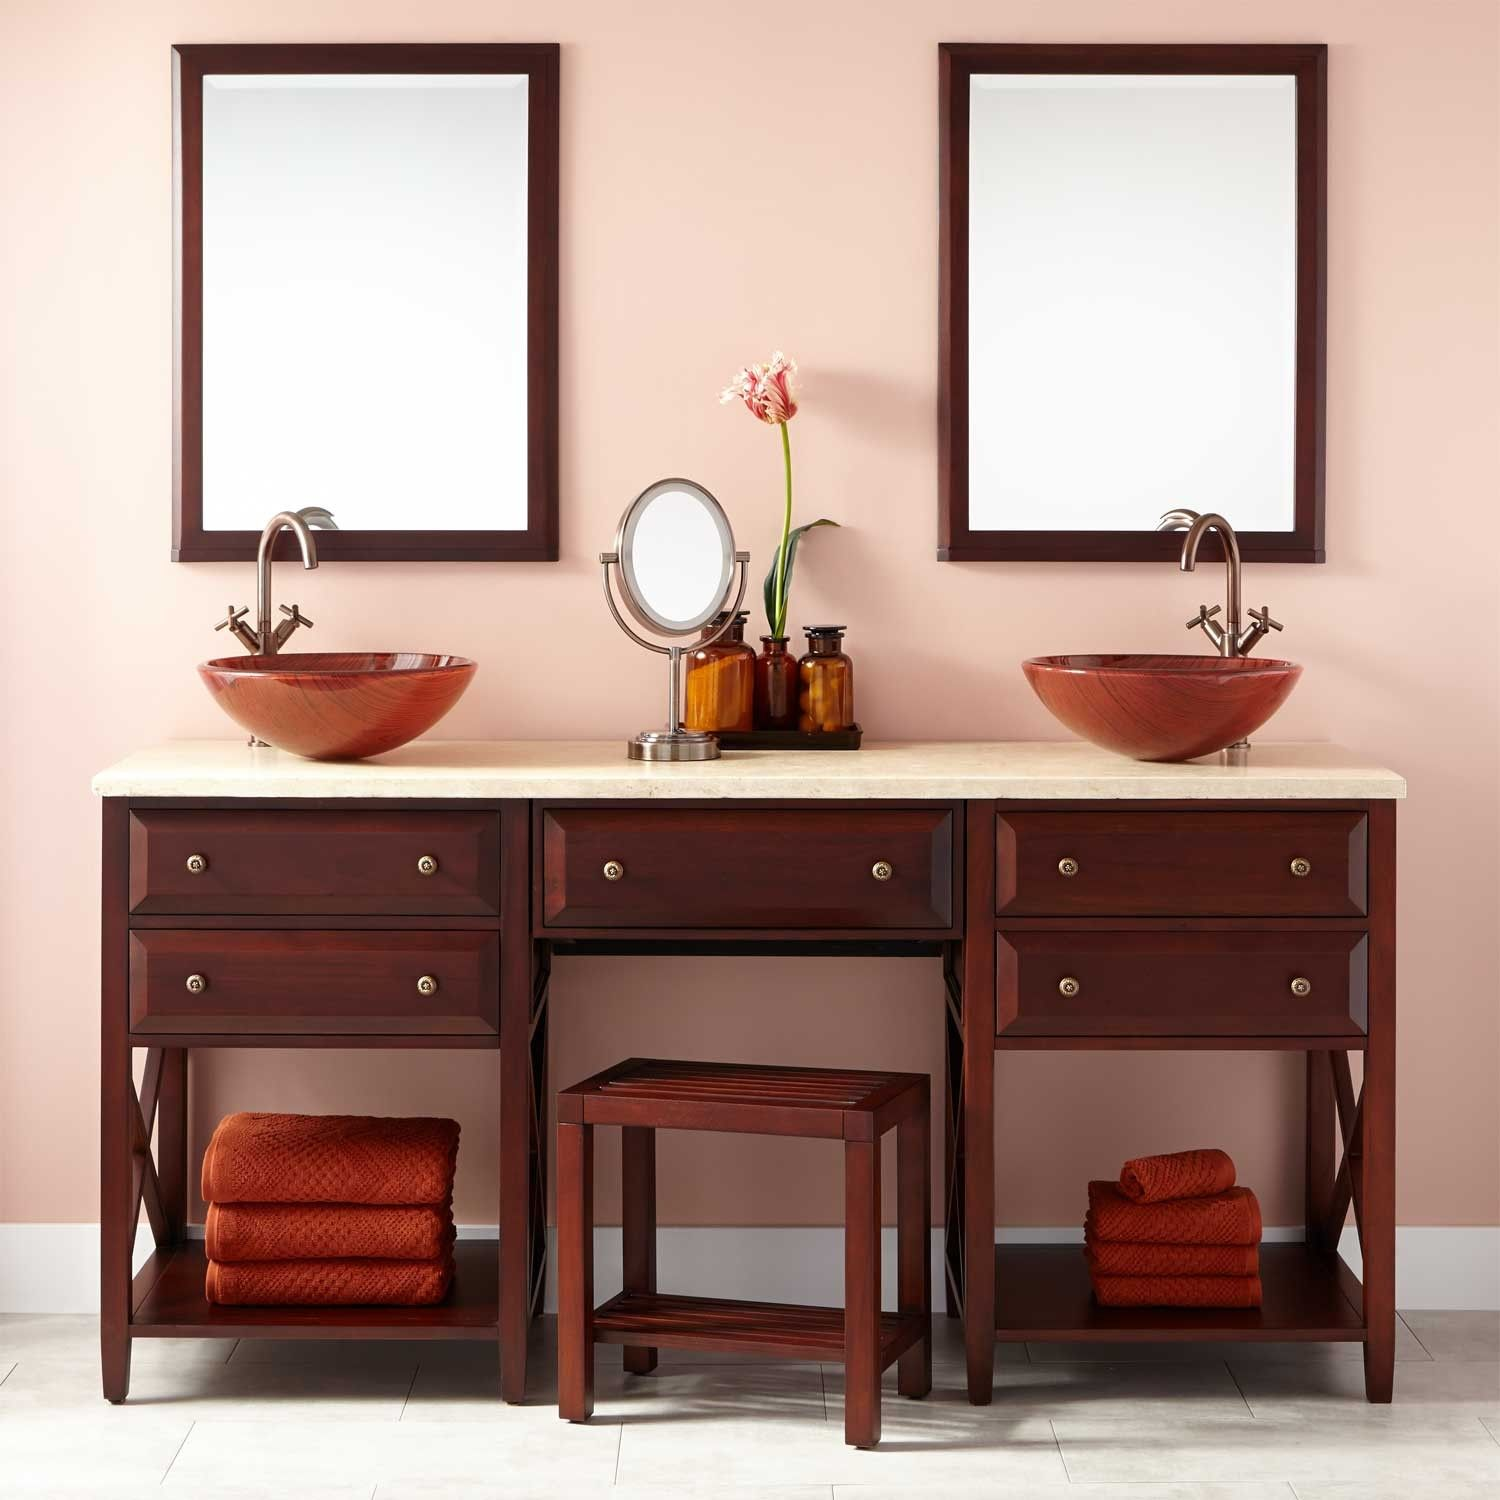 of vessel mirrors with sinks cool inspirational inch sink unique vanity double bathroom